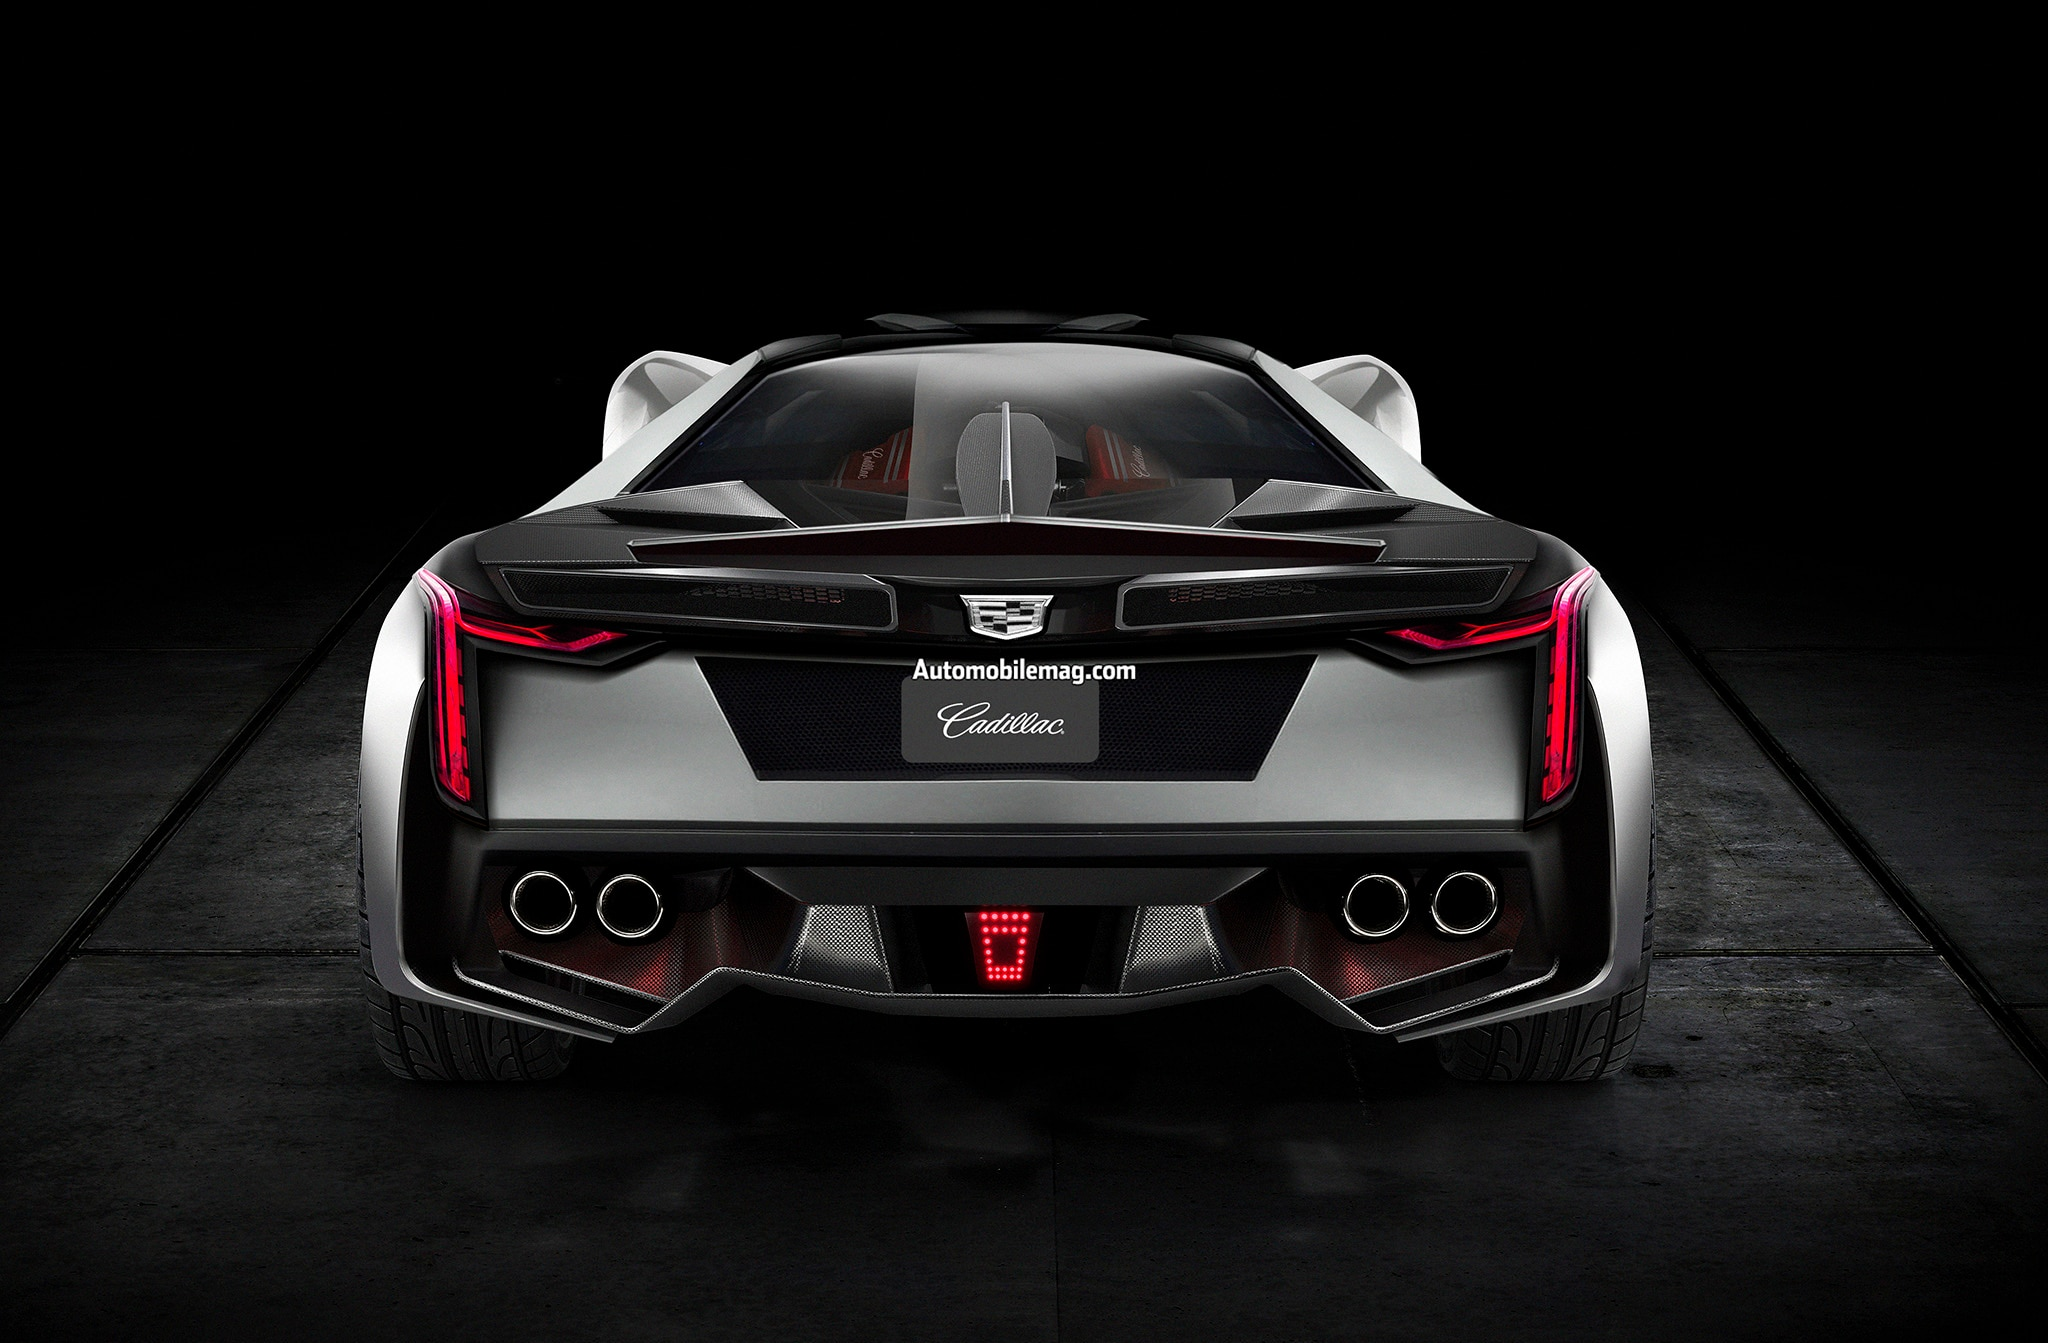 what if cadillac built a halo supercar based on the 2020 corvette c8